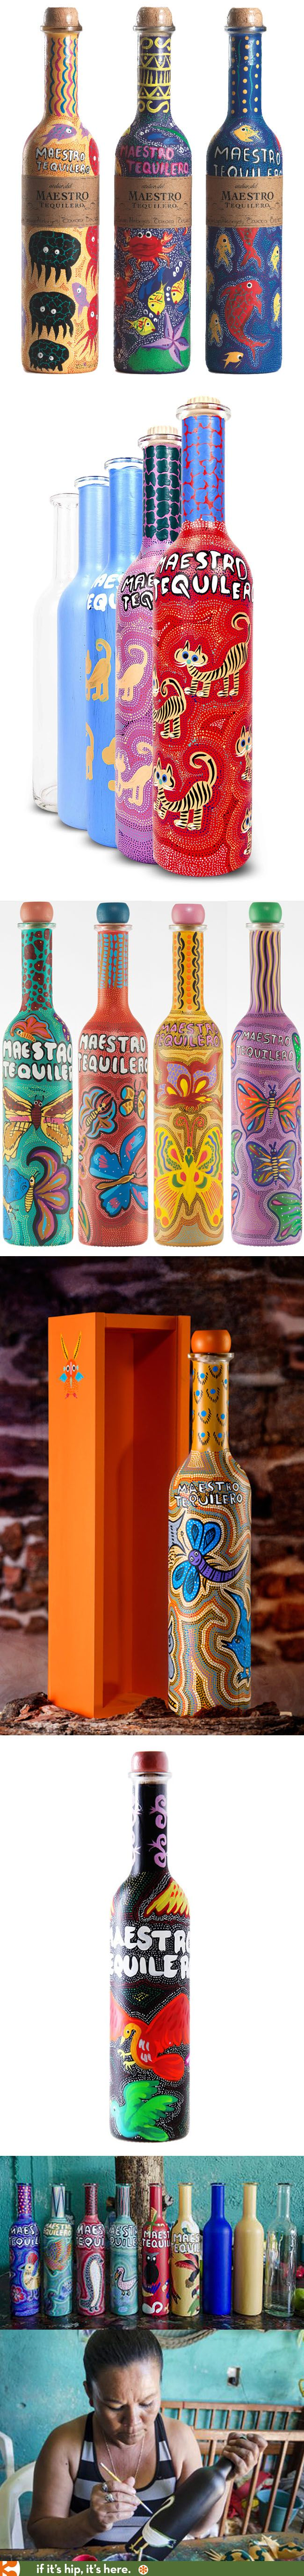 "Each year since 2010, Maestro Tequilero has offered a limited collection, ""Atelier Maestro"", of themed bottles hand painted by Oaxacan Artists. Here are the Birds, Butterflies, Animals and Sea Creatures PD"